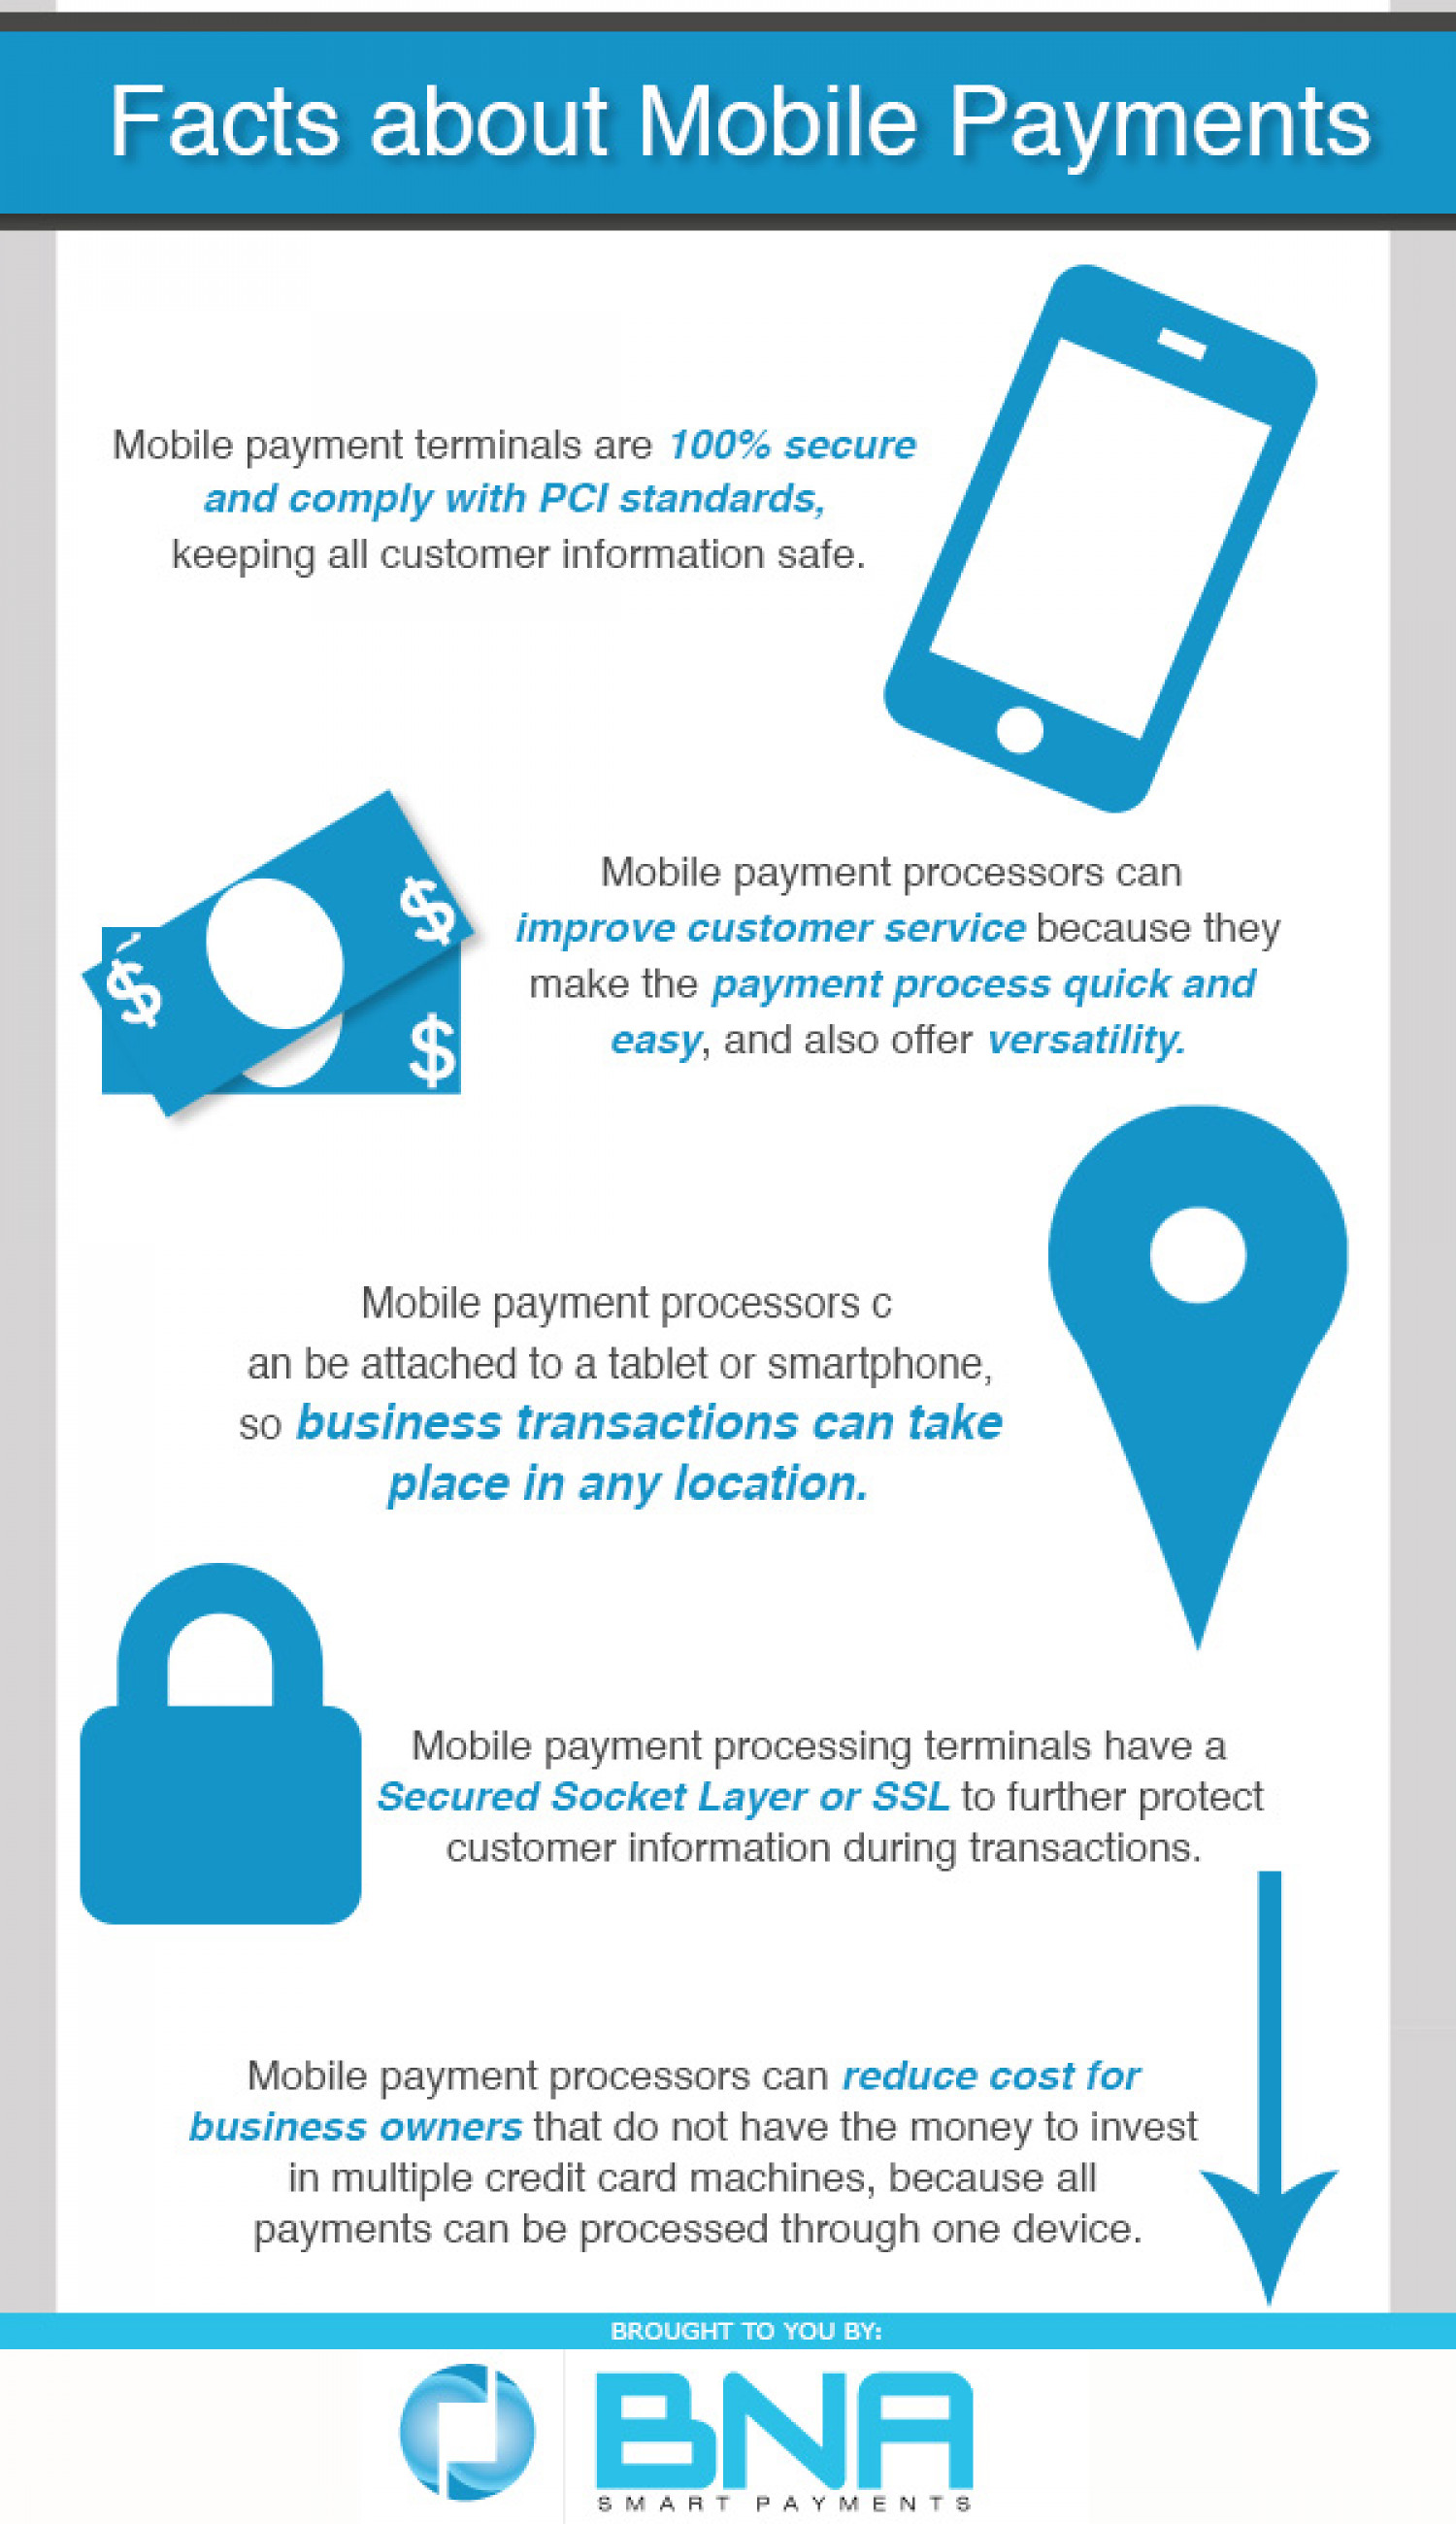 Facts About Mobile Payments Infographic